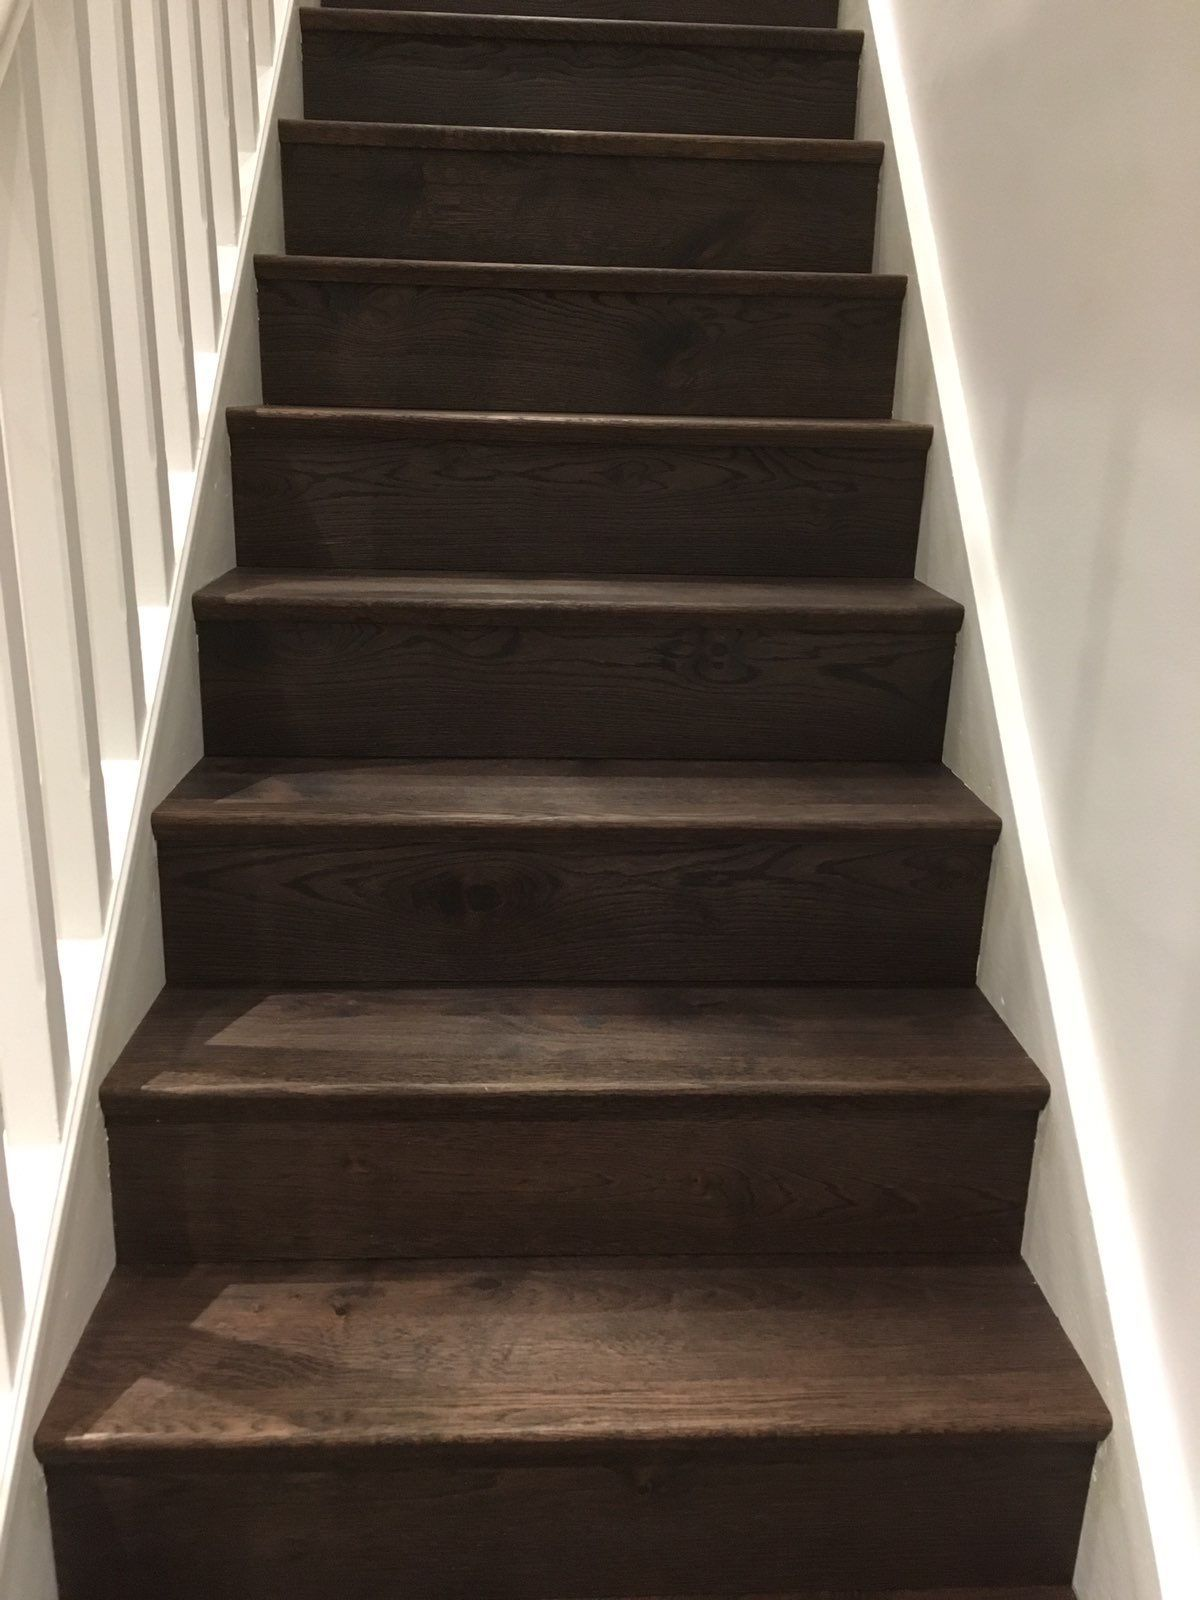 Pin by Nami on Paint Engineered timber flooring, Wood